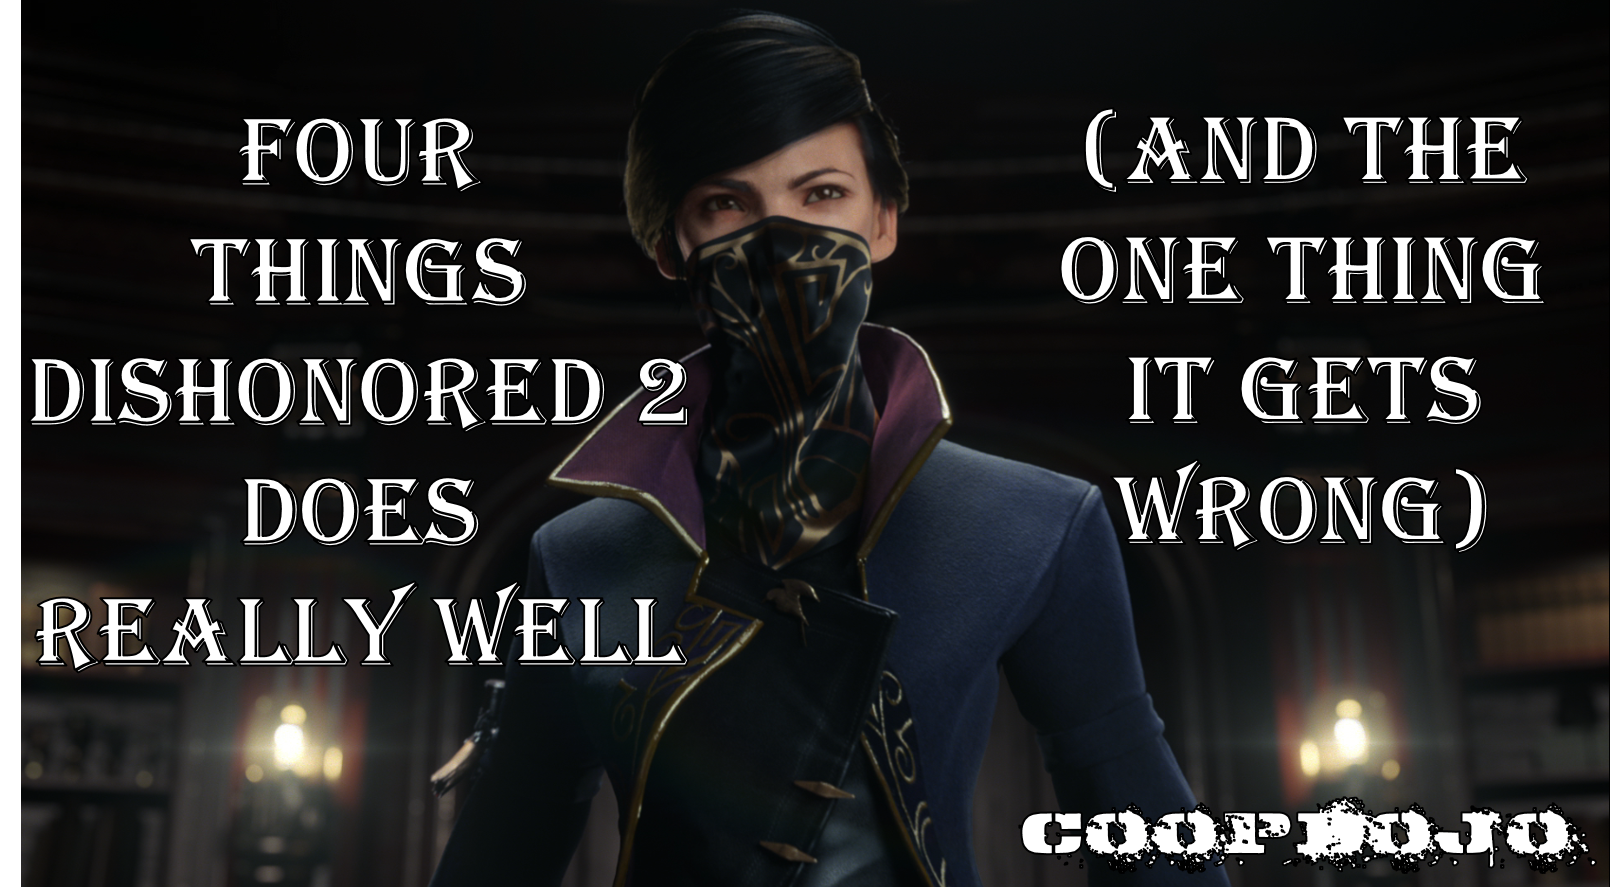 Four Things Dishonored 2 Does Well (and One Thing It Gets Wrong)